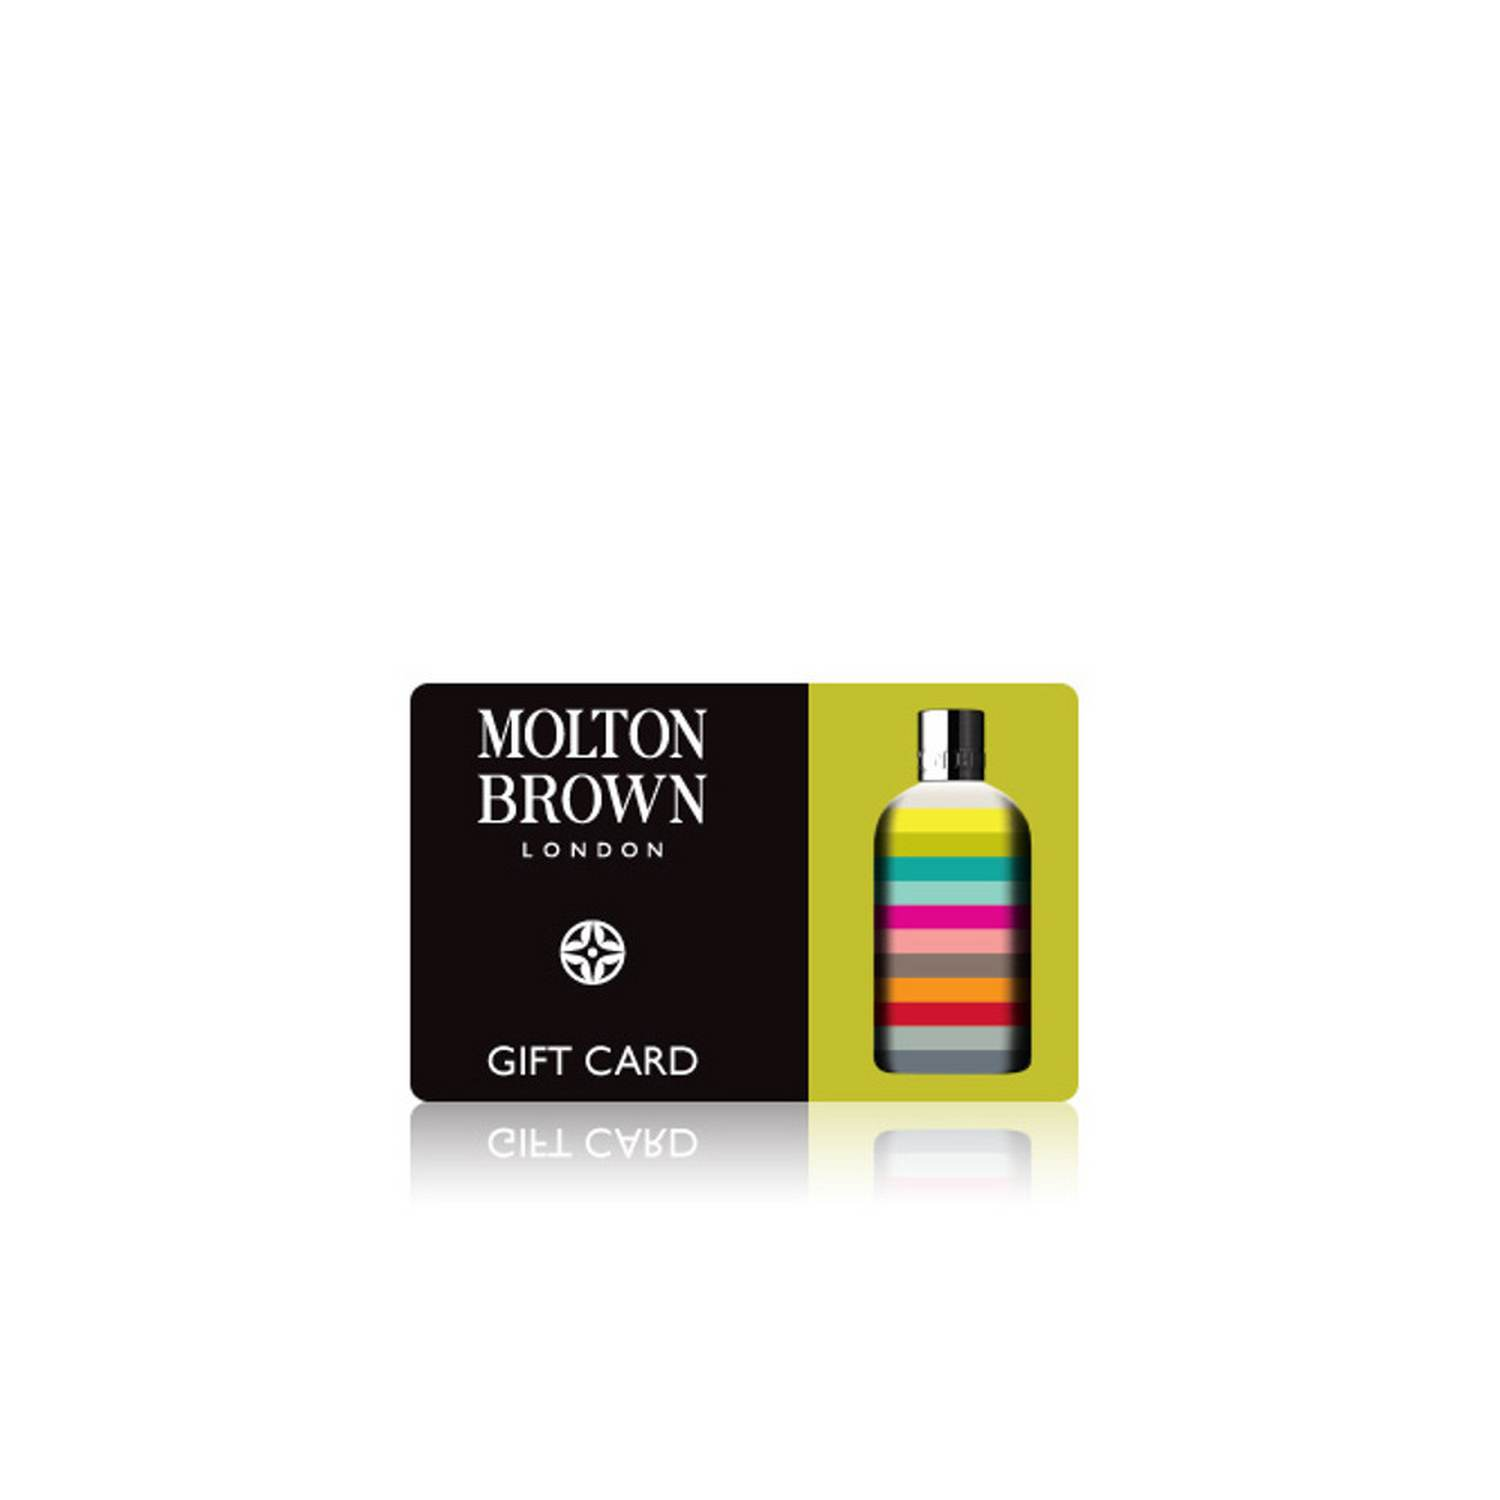 25 Gift Card Luxury Beauty Gifts Molton Brown Uk